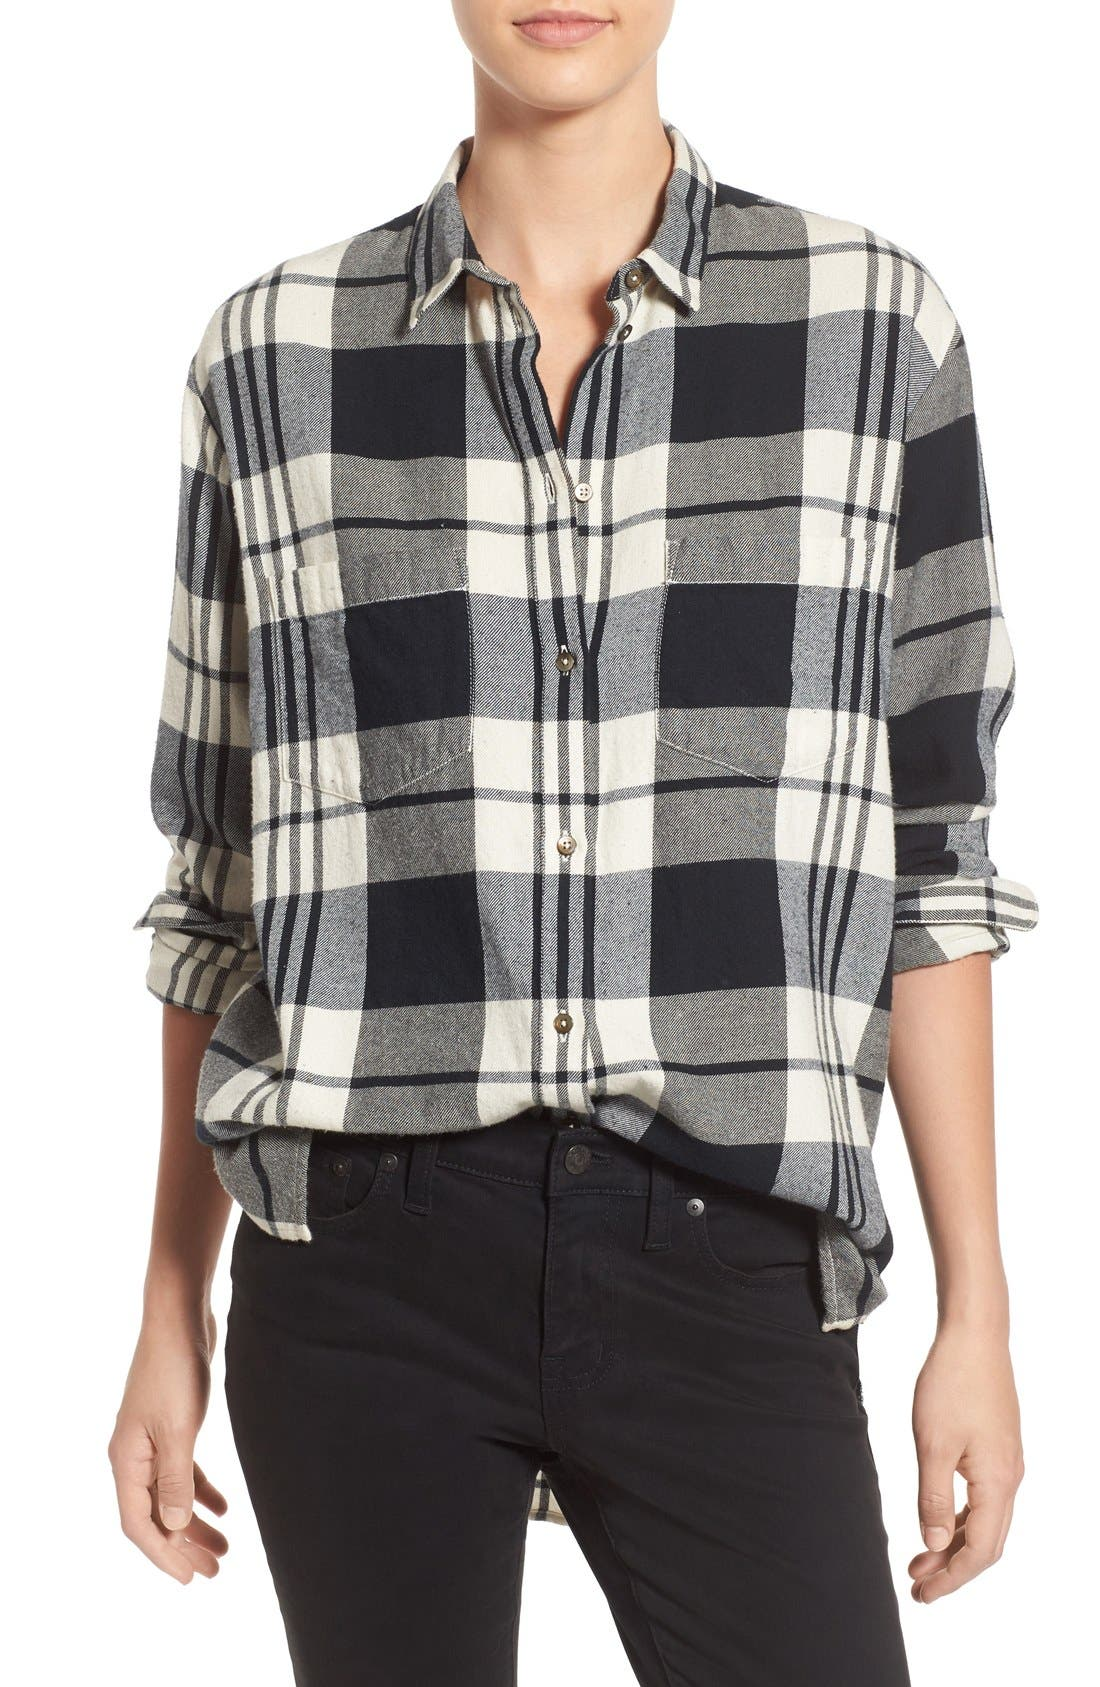 Alternate Image 1 Selected - Madewell 'Ex Boyfriend' Plaid Oversize Cotton Shirt